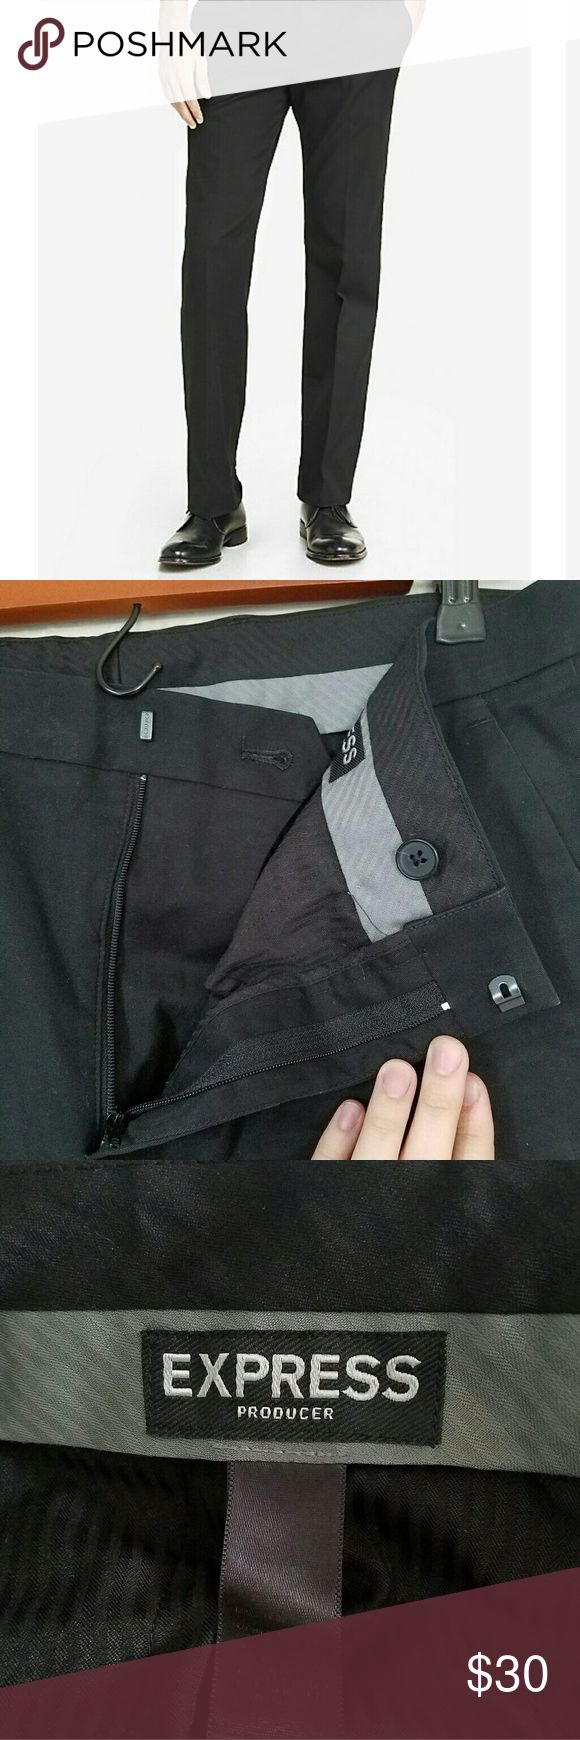 Mens Express producer pant Black Producer Express dress pants  Hidden hook and button closure with zip fly Slant hand pockets and slit back pockets with buttons Excellent used condition! Just needs a good iron or visit to dry cleaners Express Pants Dress